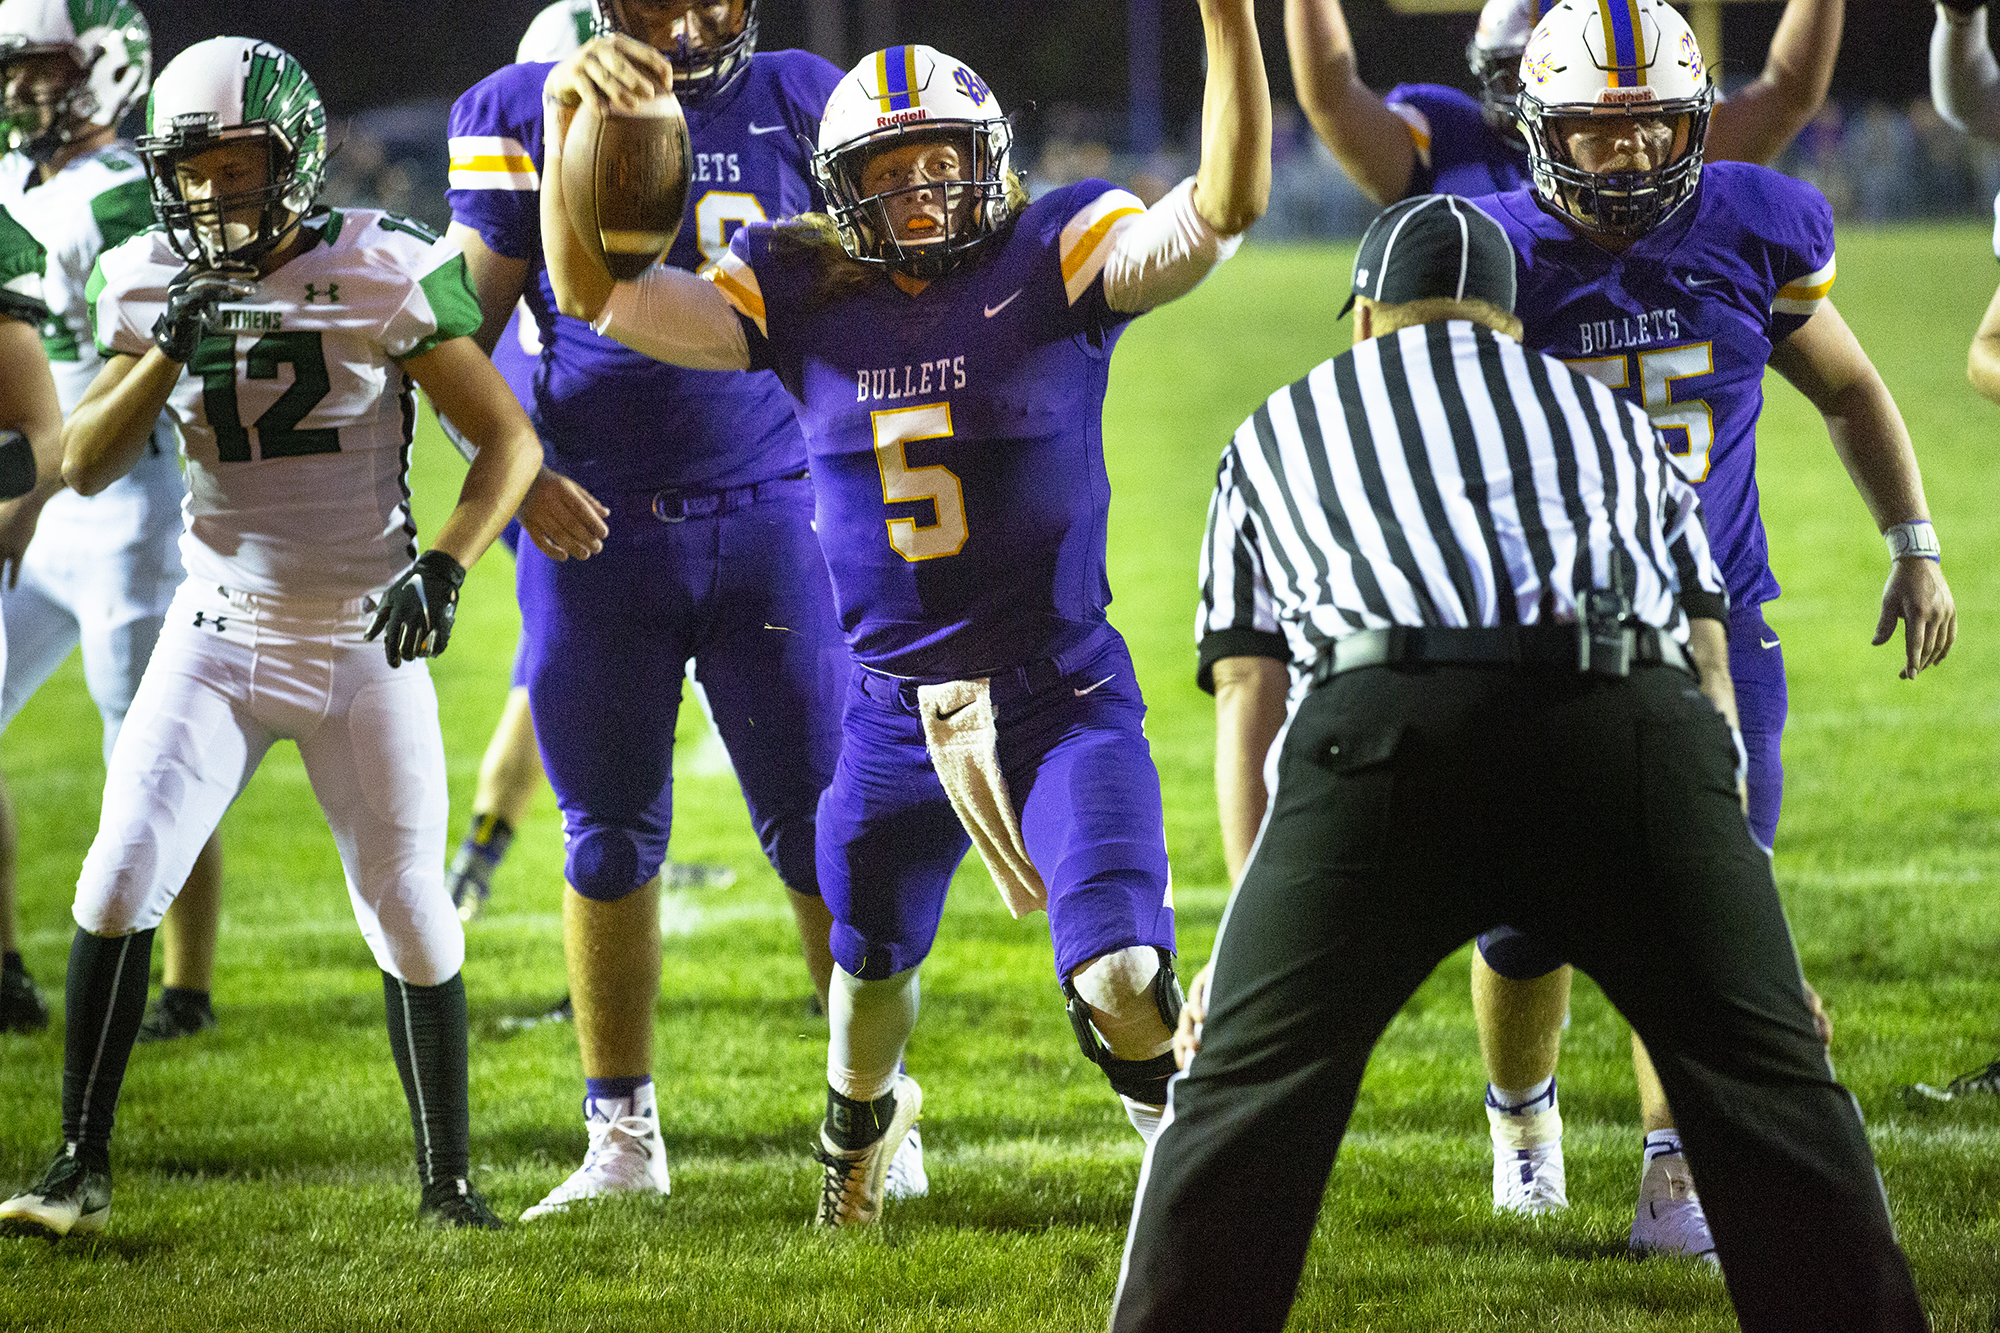 Williamsville's Damon Coady signals touchdown on a quarterback keep to put the Bullets up 14-8 over Athens in the first half Friday, Aug. 24, 2018 at Williamsville High School in Williamsville, Ill. [Rich Saal/The State Journal-Register]